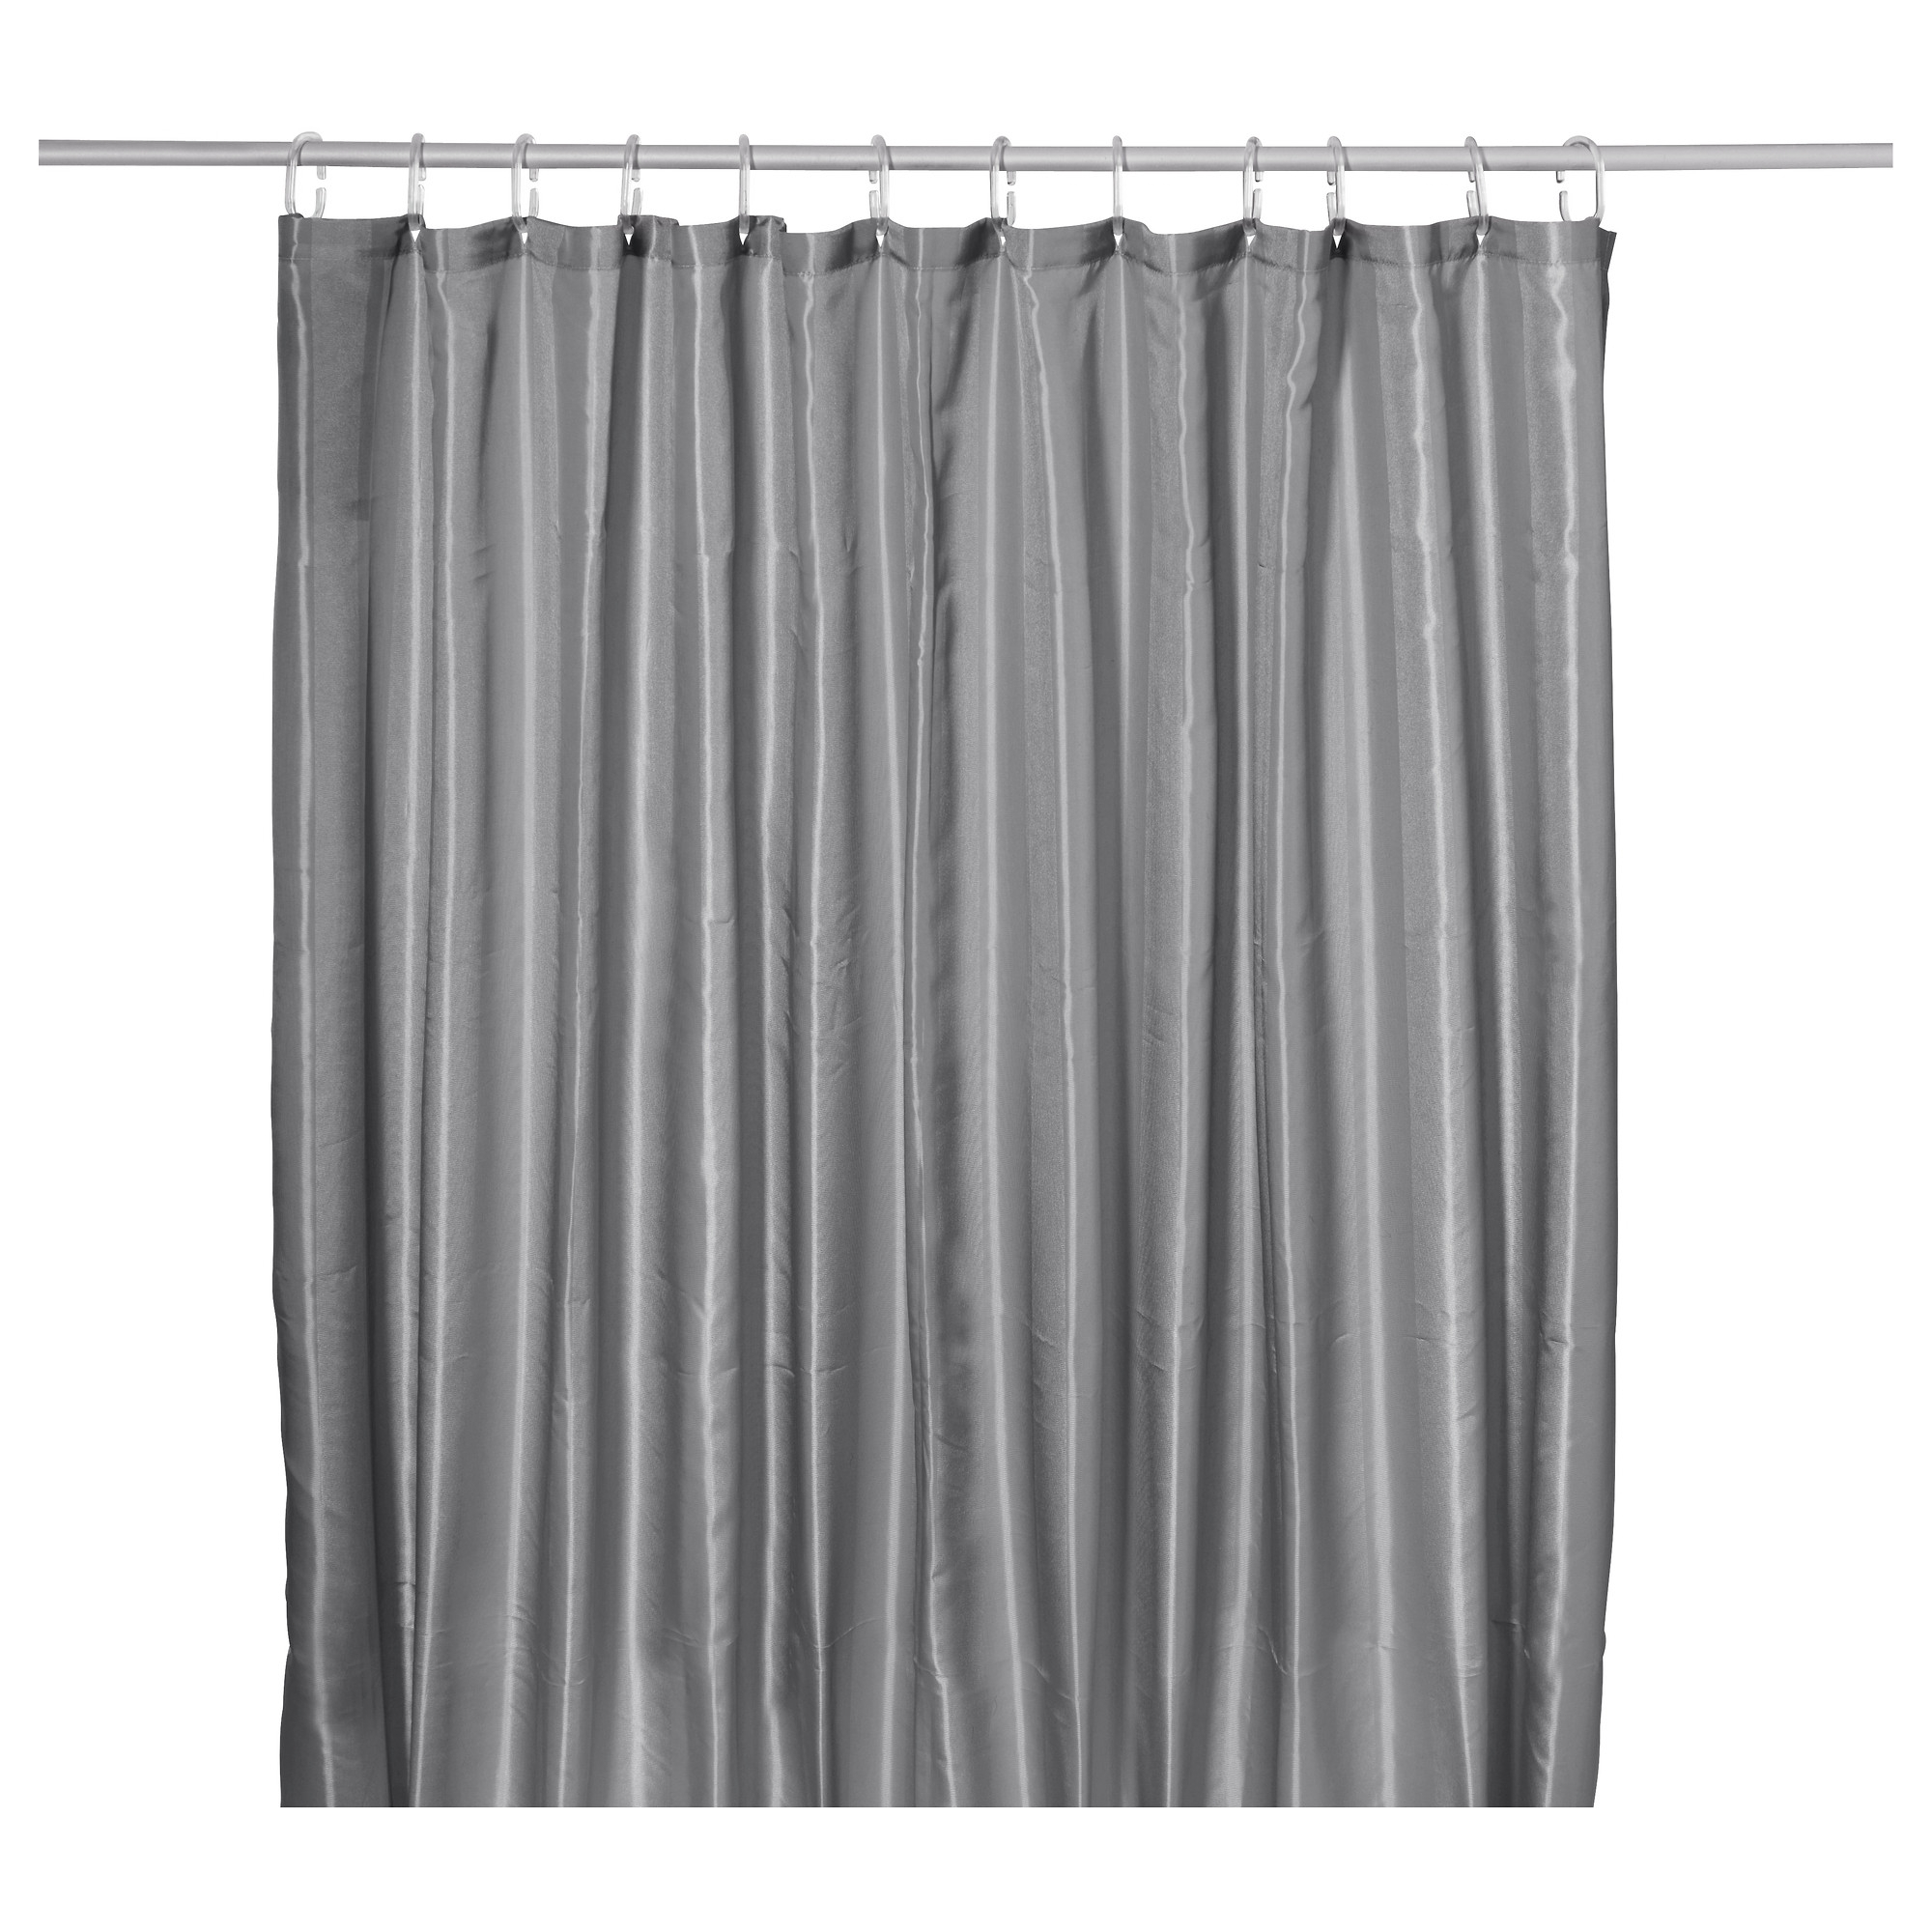 Big W Shower Curtain Rod Shower Curtain Ideas pertaining to proportions 2000 X 2000